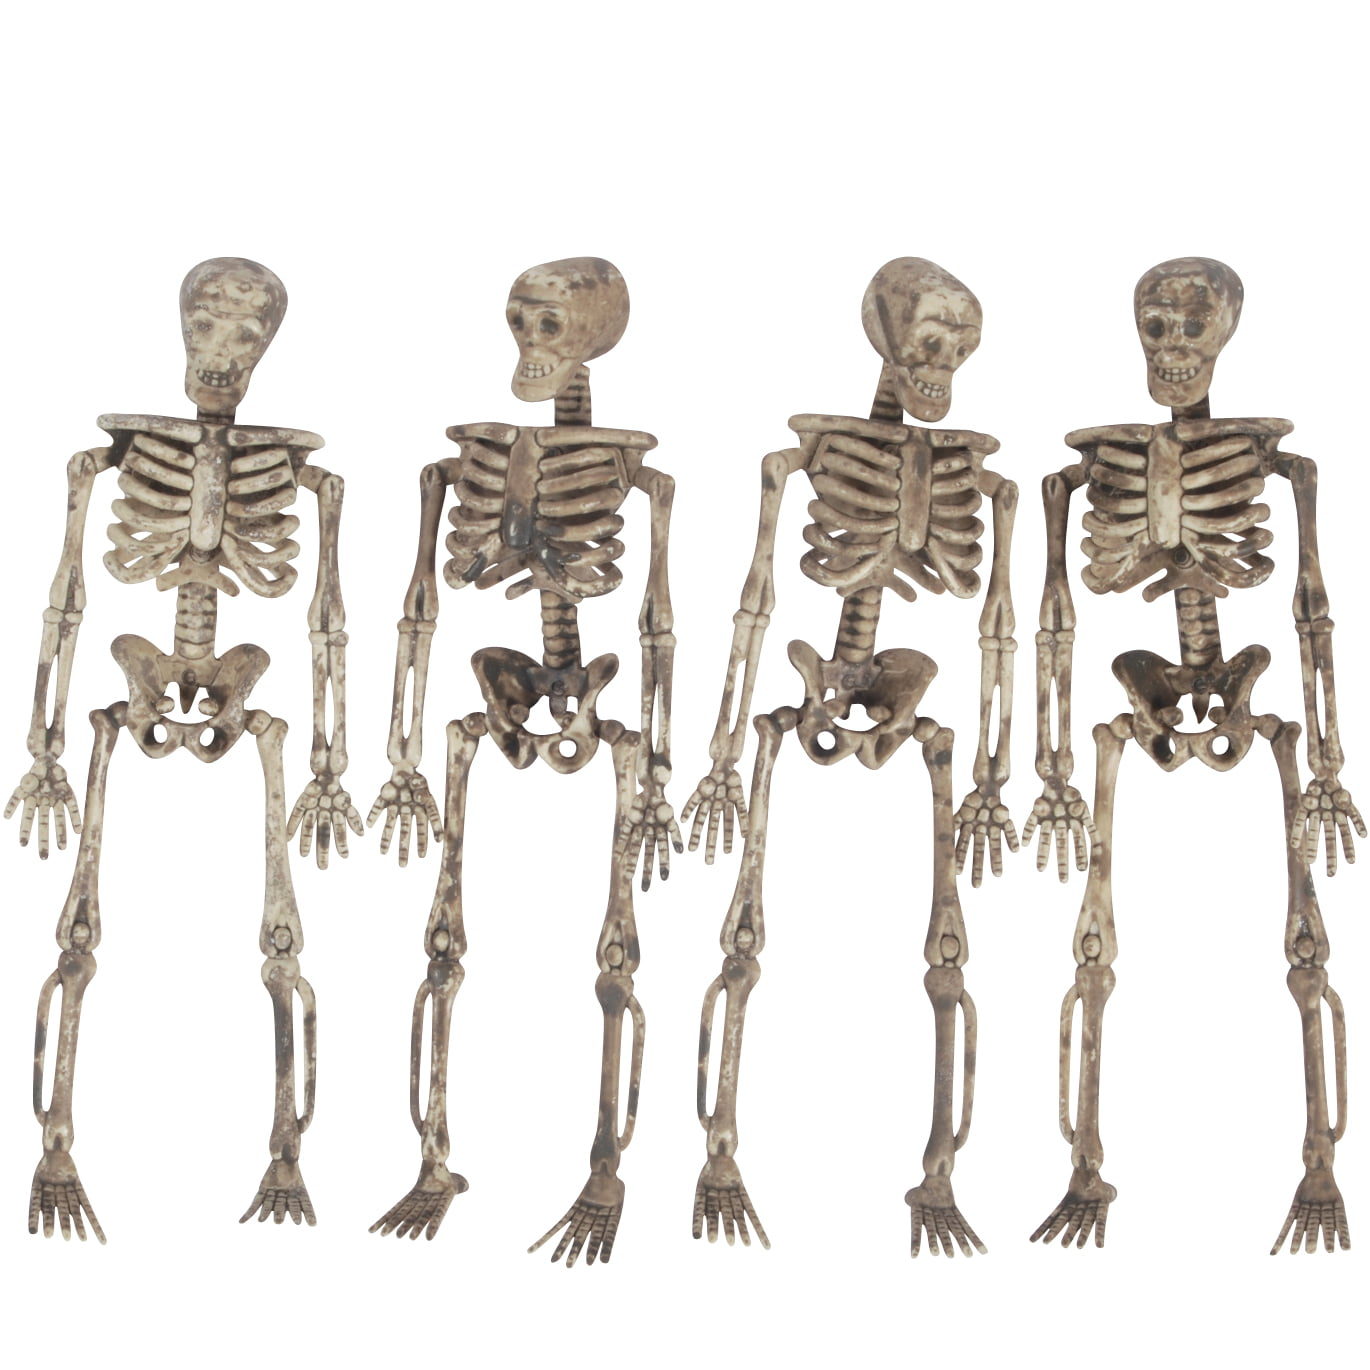 5 ft. Pose Skeleton Halloween Decoration - Walmart.com